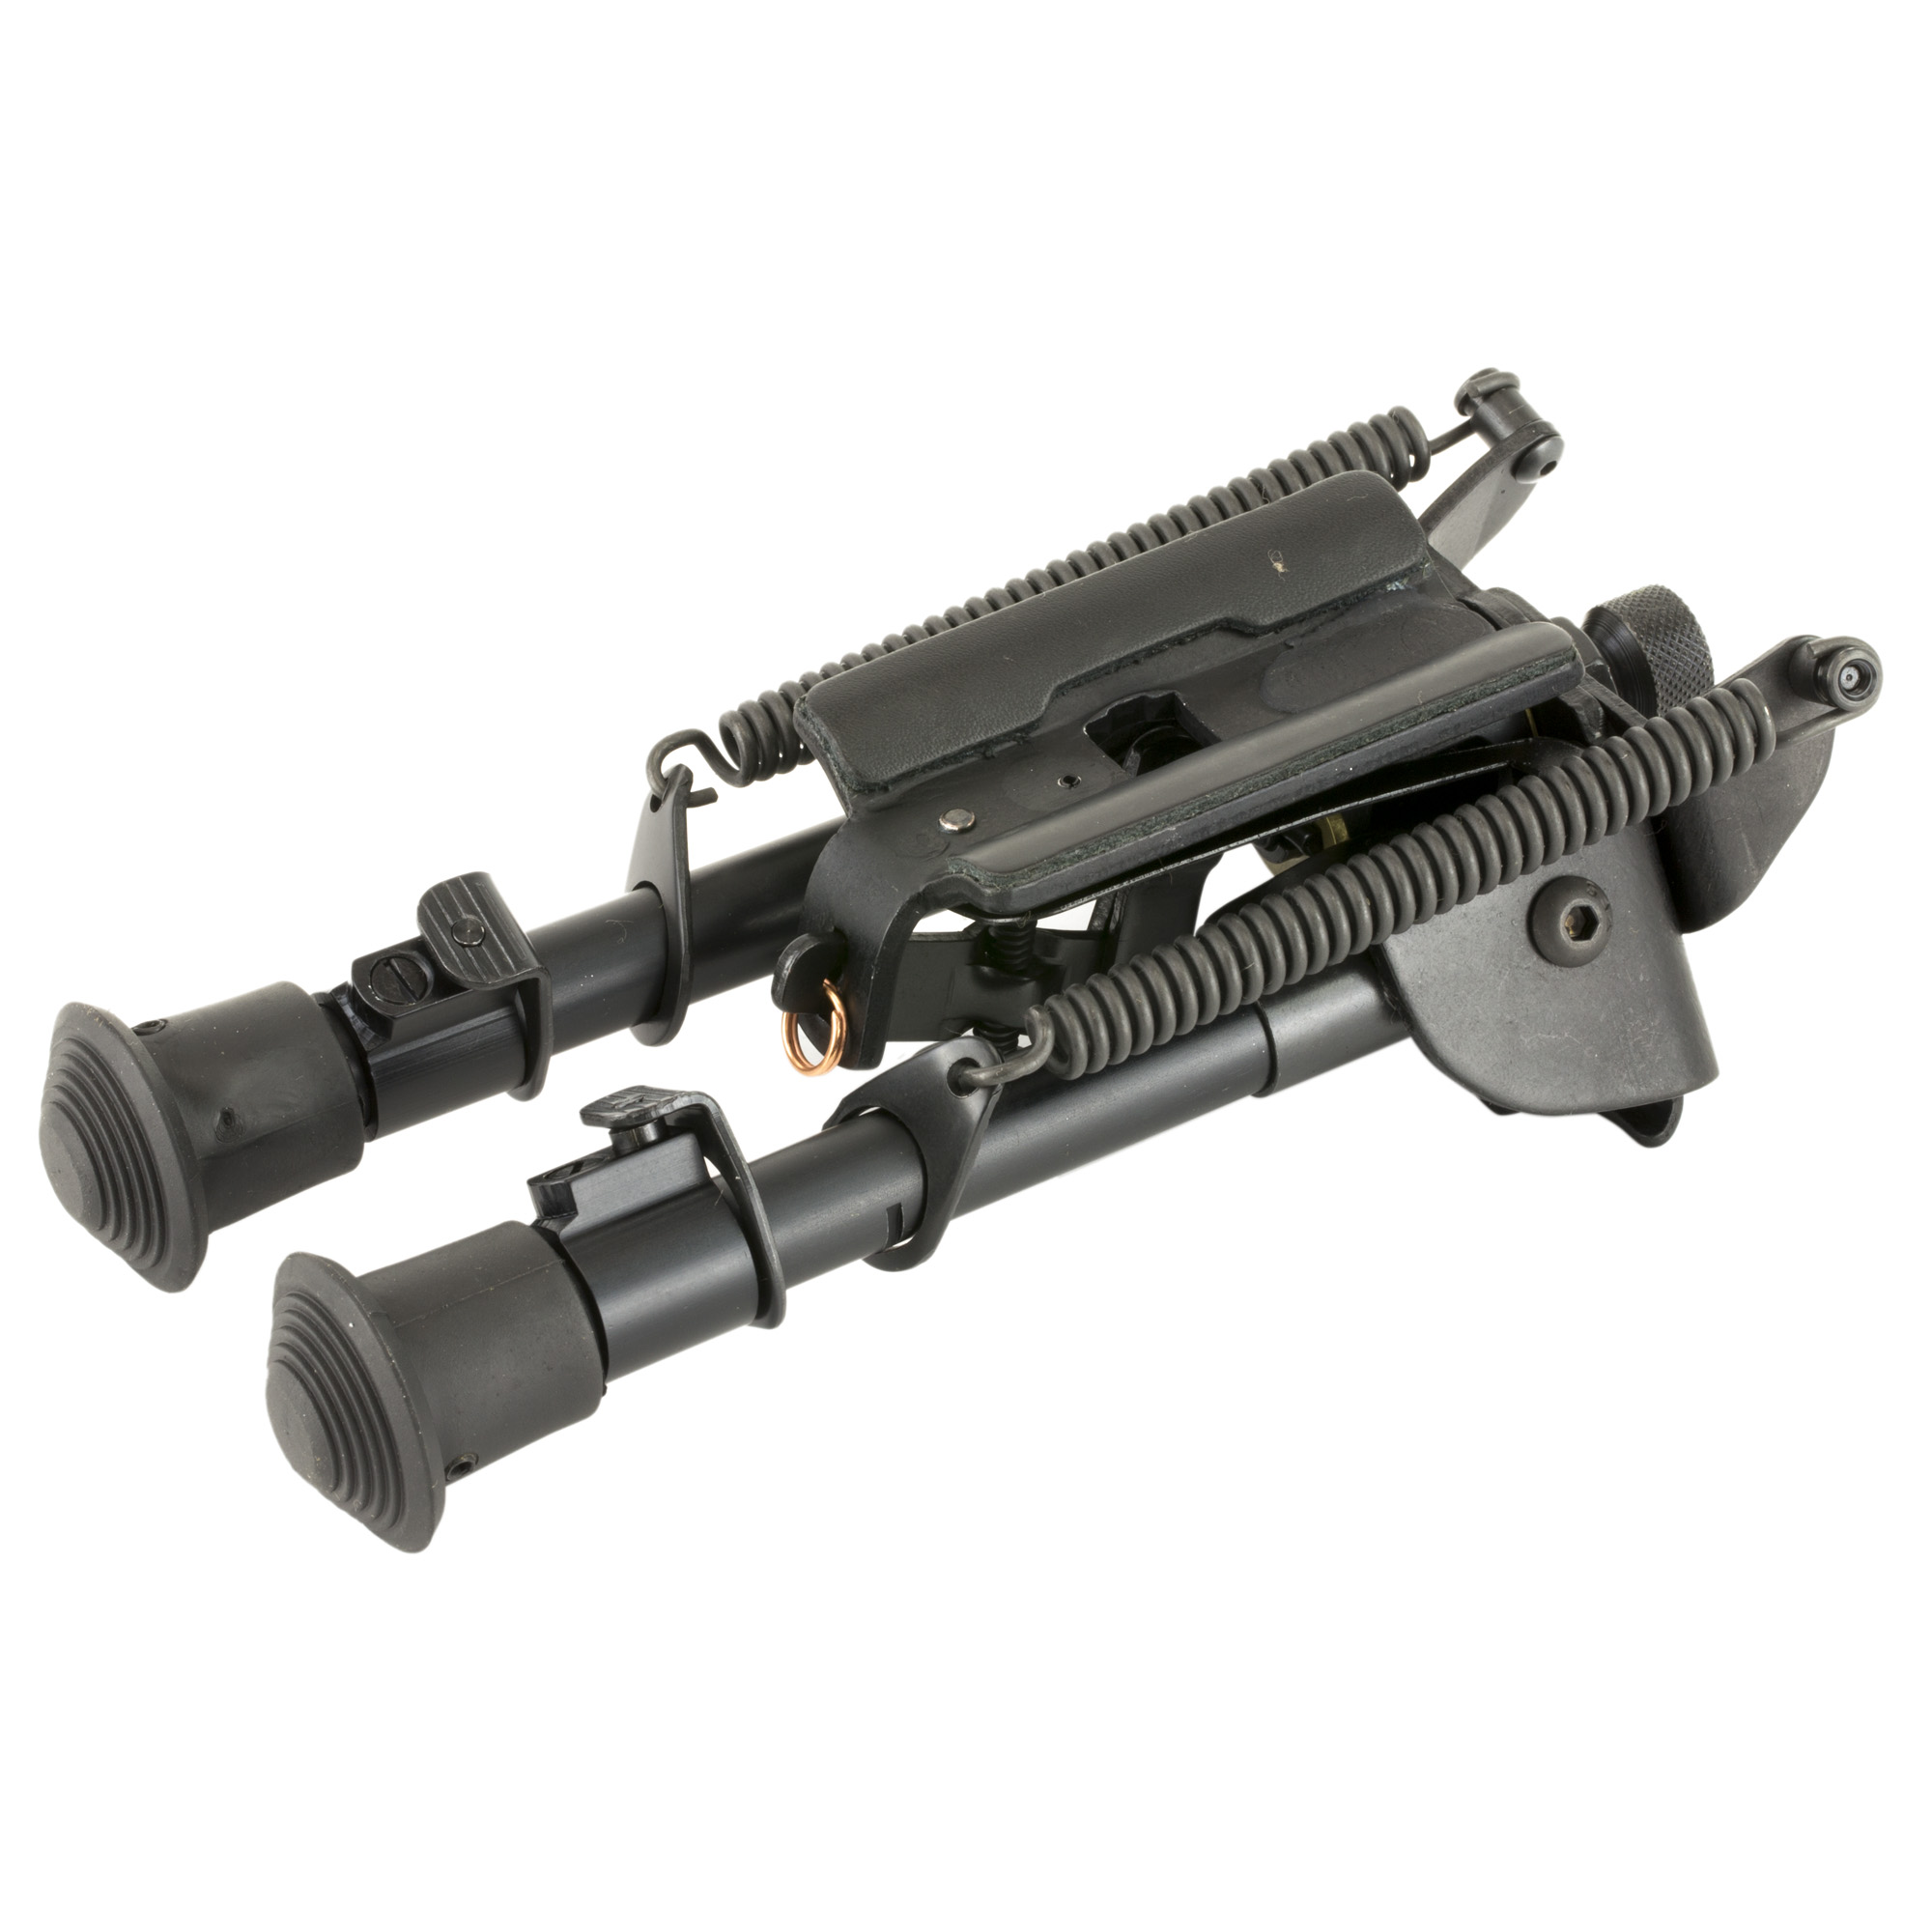 """Harris Engineering's Ultra-Light 6""""-9"""" Bench Rest Swivel/Notched Legs Sling Swivel Bipod is manufactured using high quality parts to ensure excellent function and sustainable use. It attaches to a Sling Swivel Stud. Carrying your rifle with a sling or shooting off-hand is not impeded by the use of a Harris Bipod. Hinged bases have tension adjustment to eliminate tremor or looseness in the crotch area of the bipod. Bipods have an all-weather black anodized finish."""